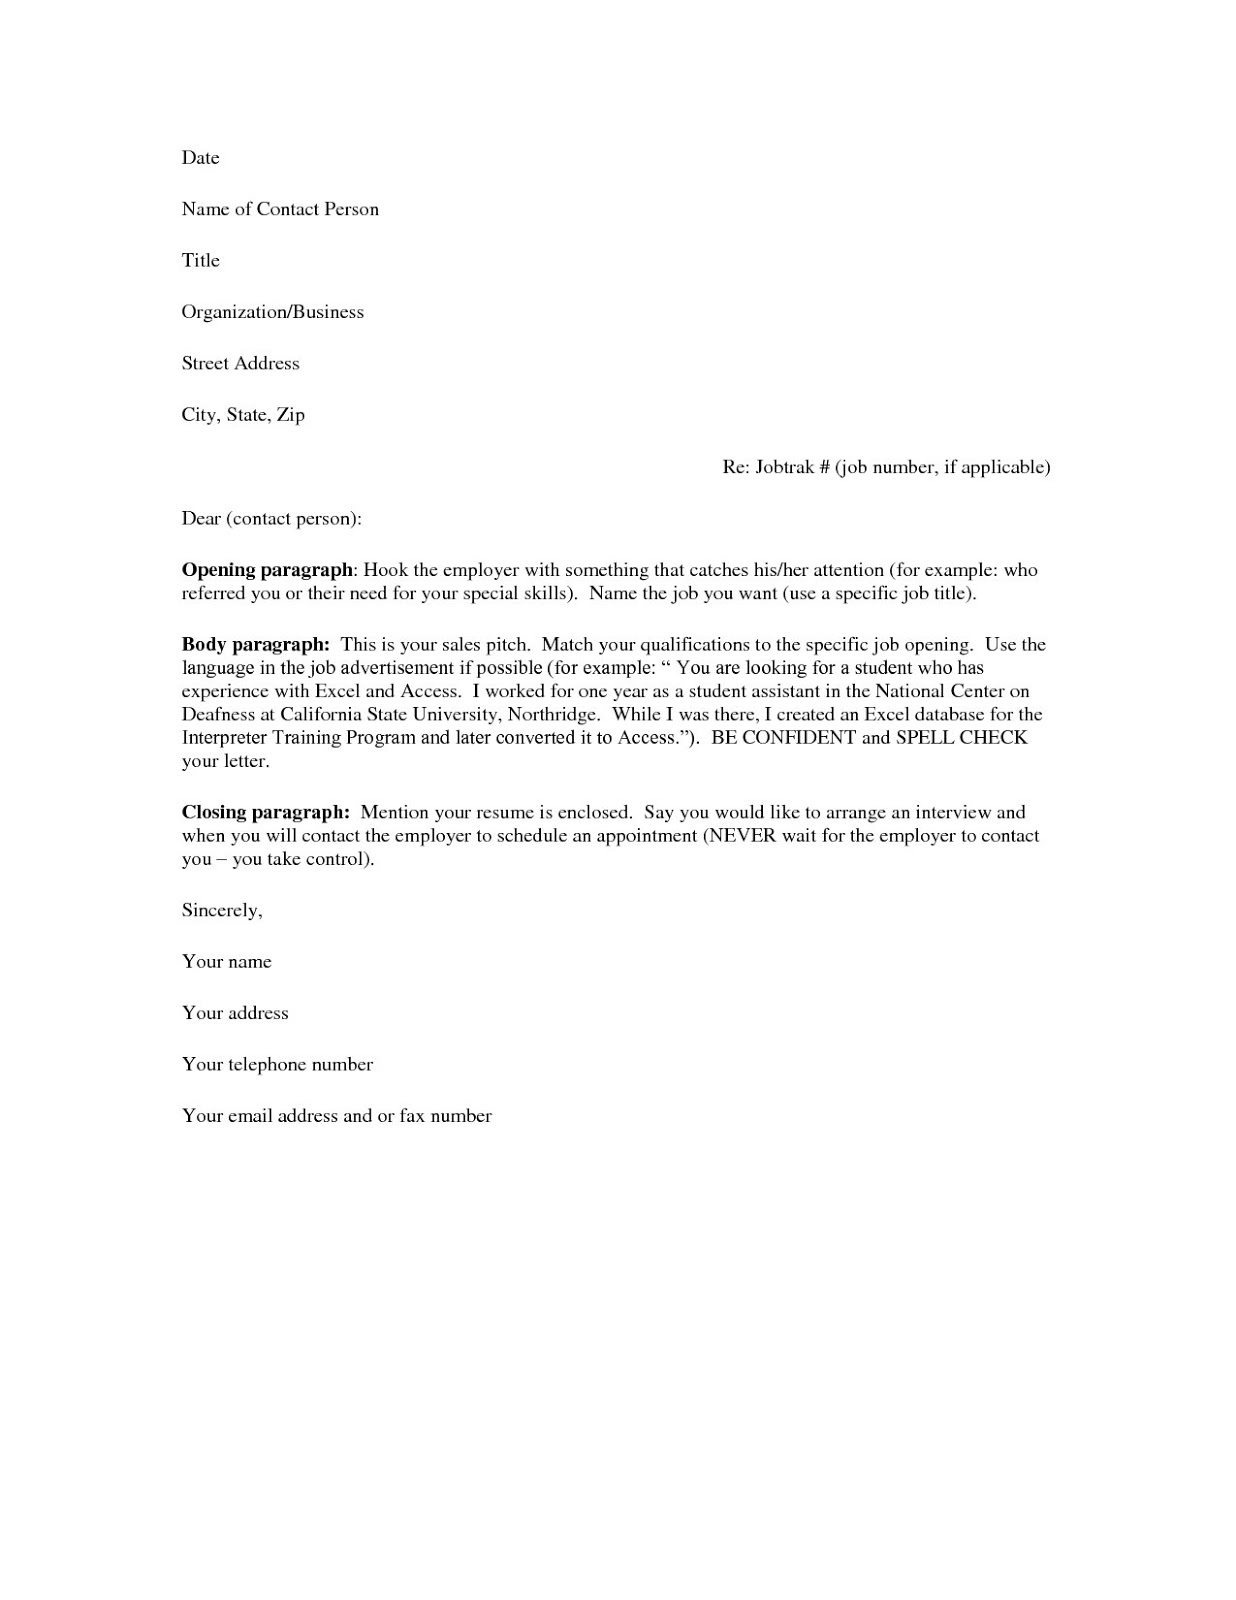 free sample resume cover letter - Template